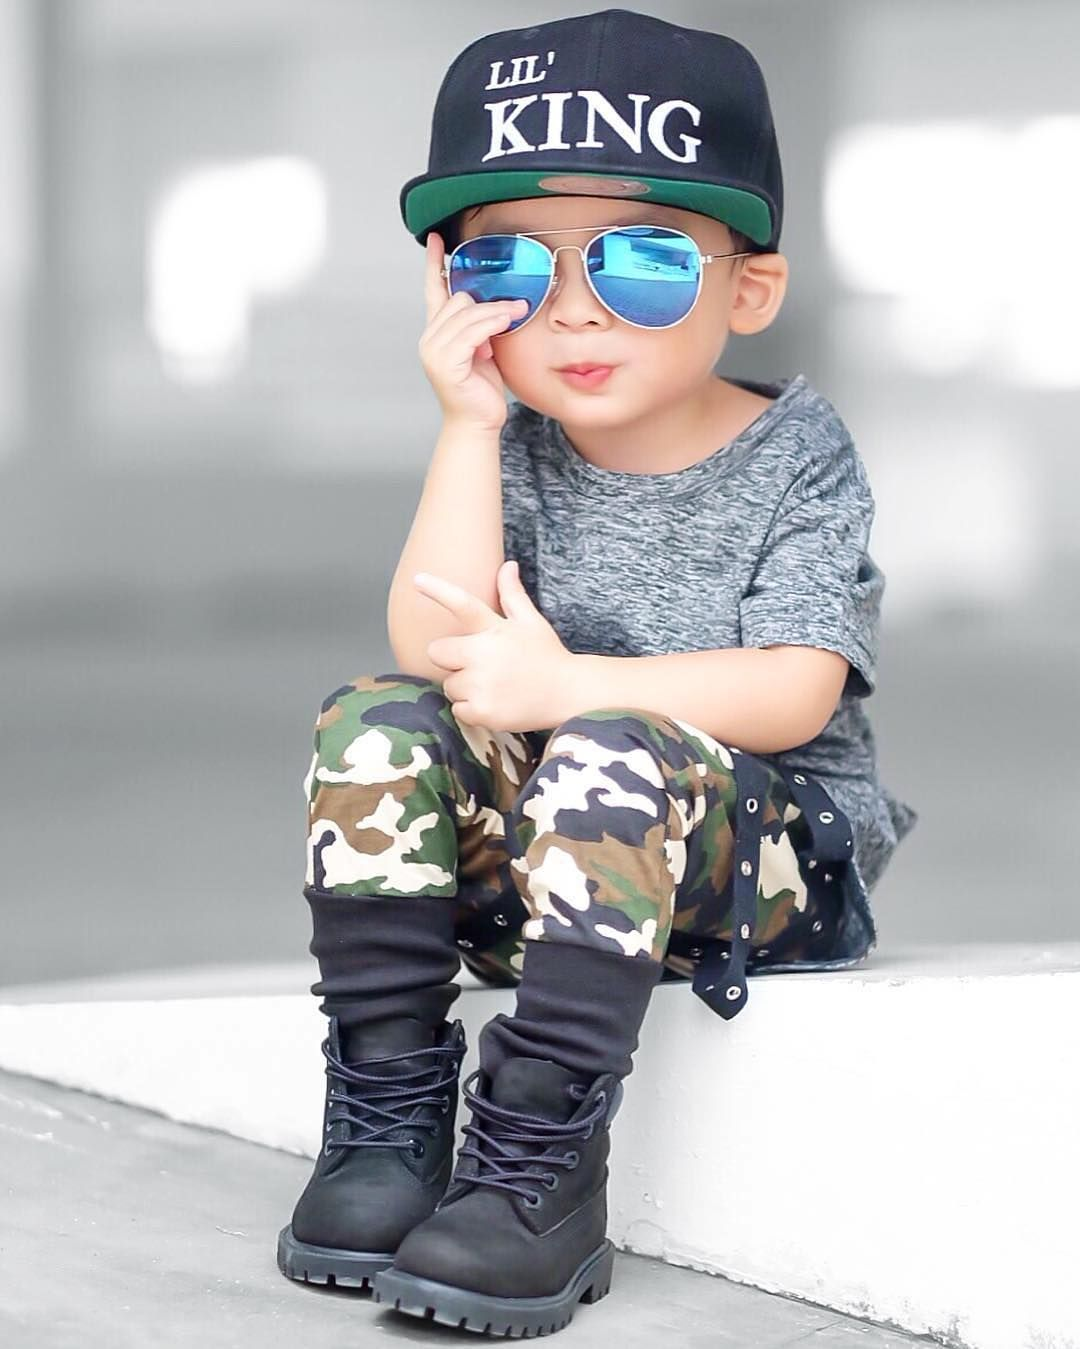 Lil King Rayden Biorkpink Double Tap This Photo Use Kidsfashionistamodel At Your Photo Stylish Little Boys Kid Fashion Girl Toddler Kids Outfits